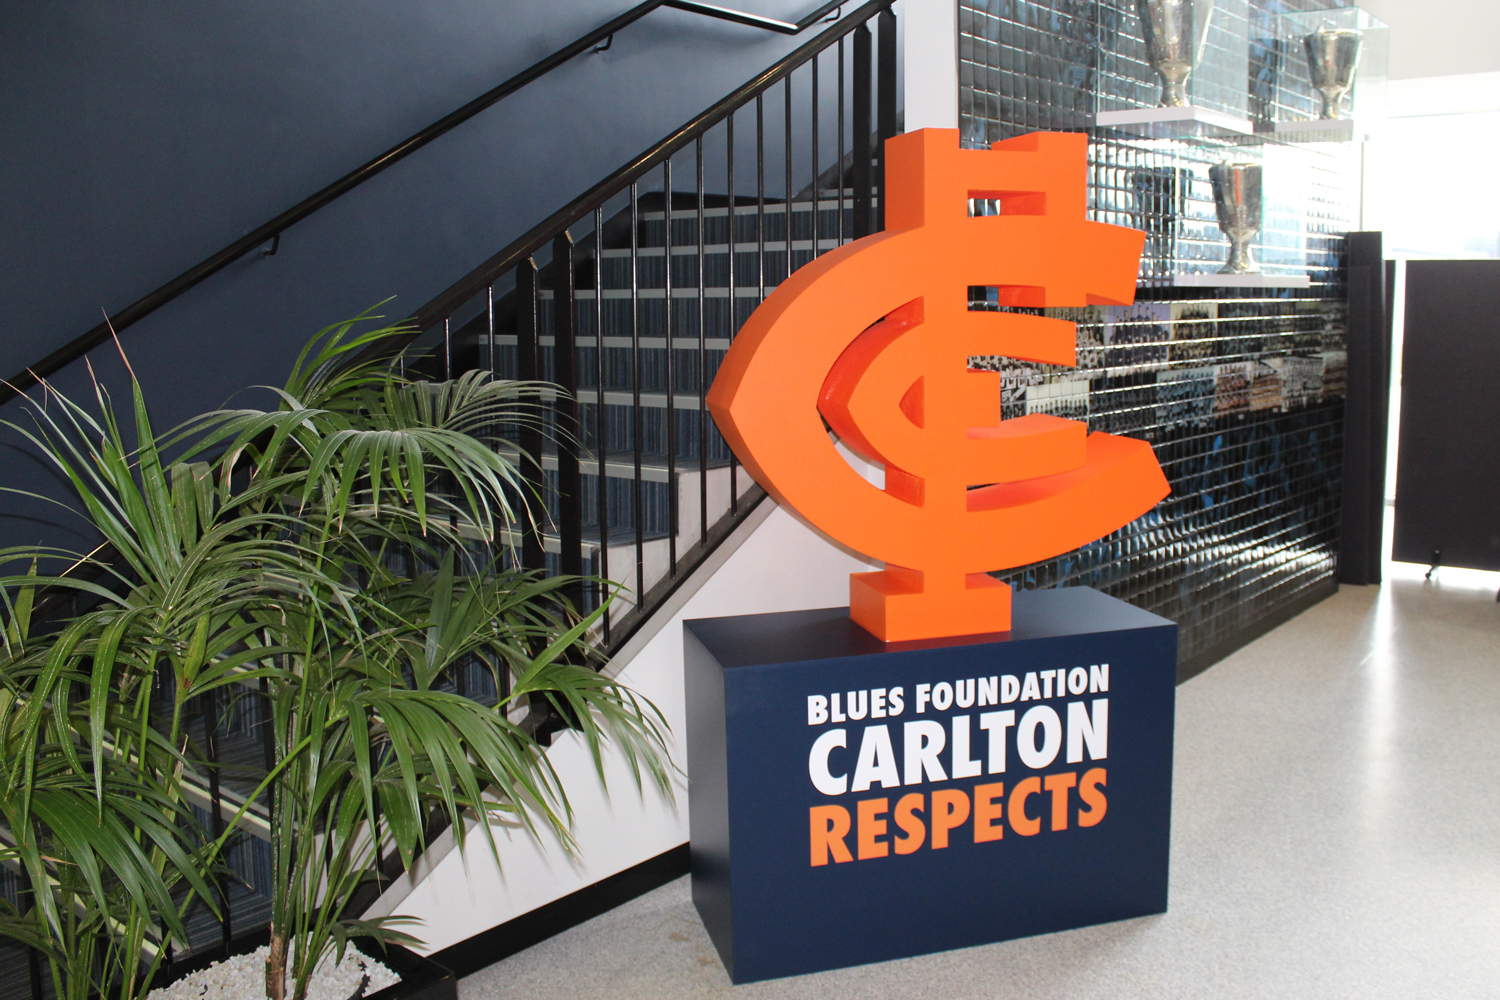 The CARLTON RESPETCS Monogram arrives at Carlton FC